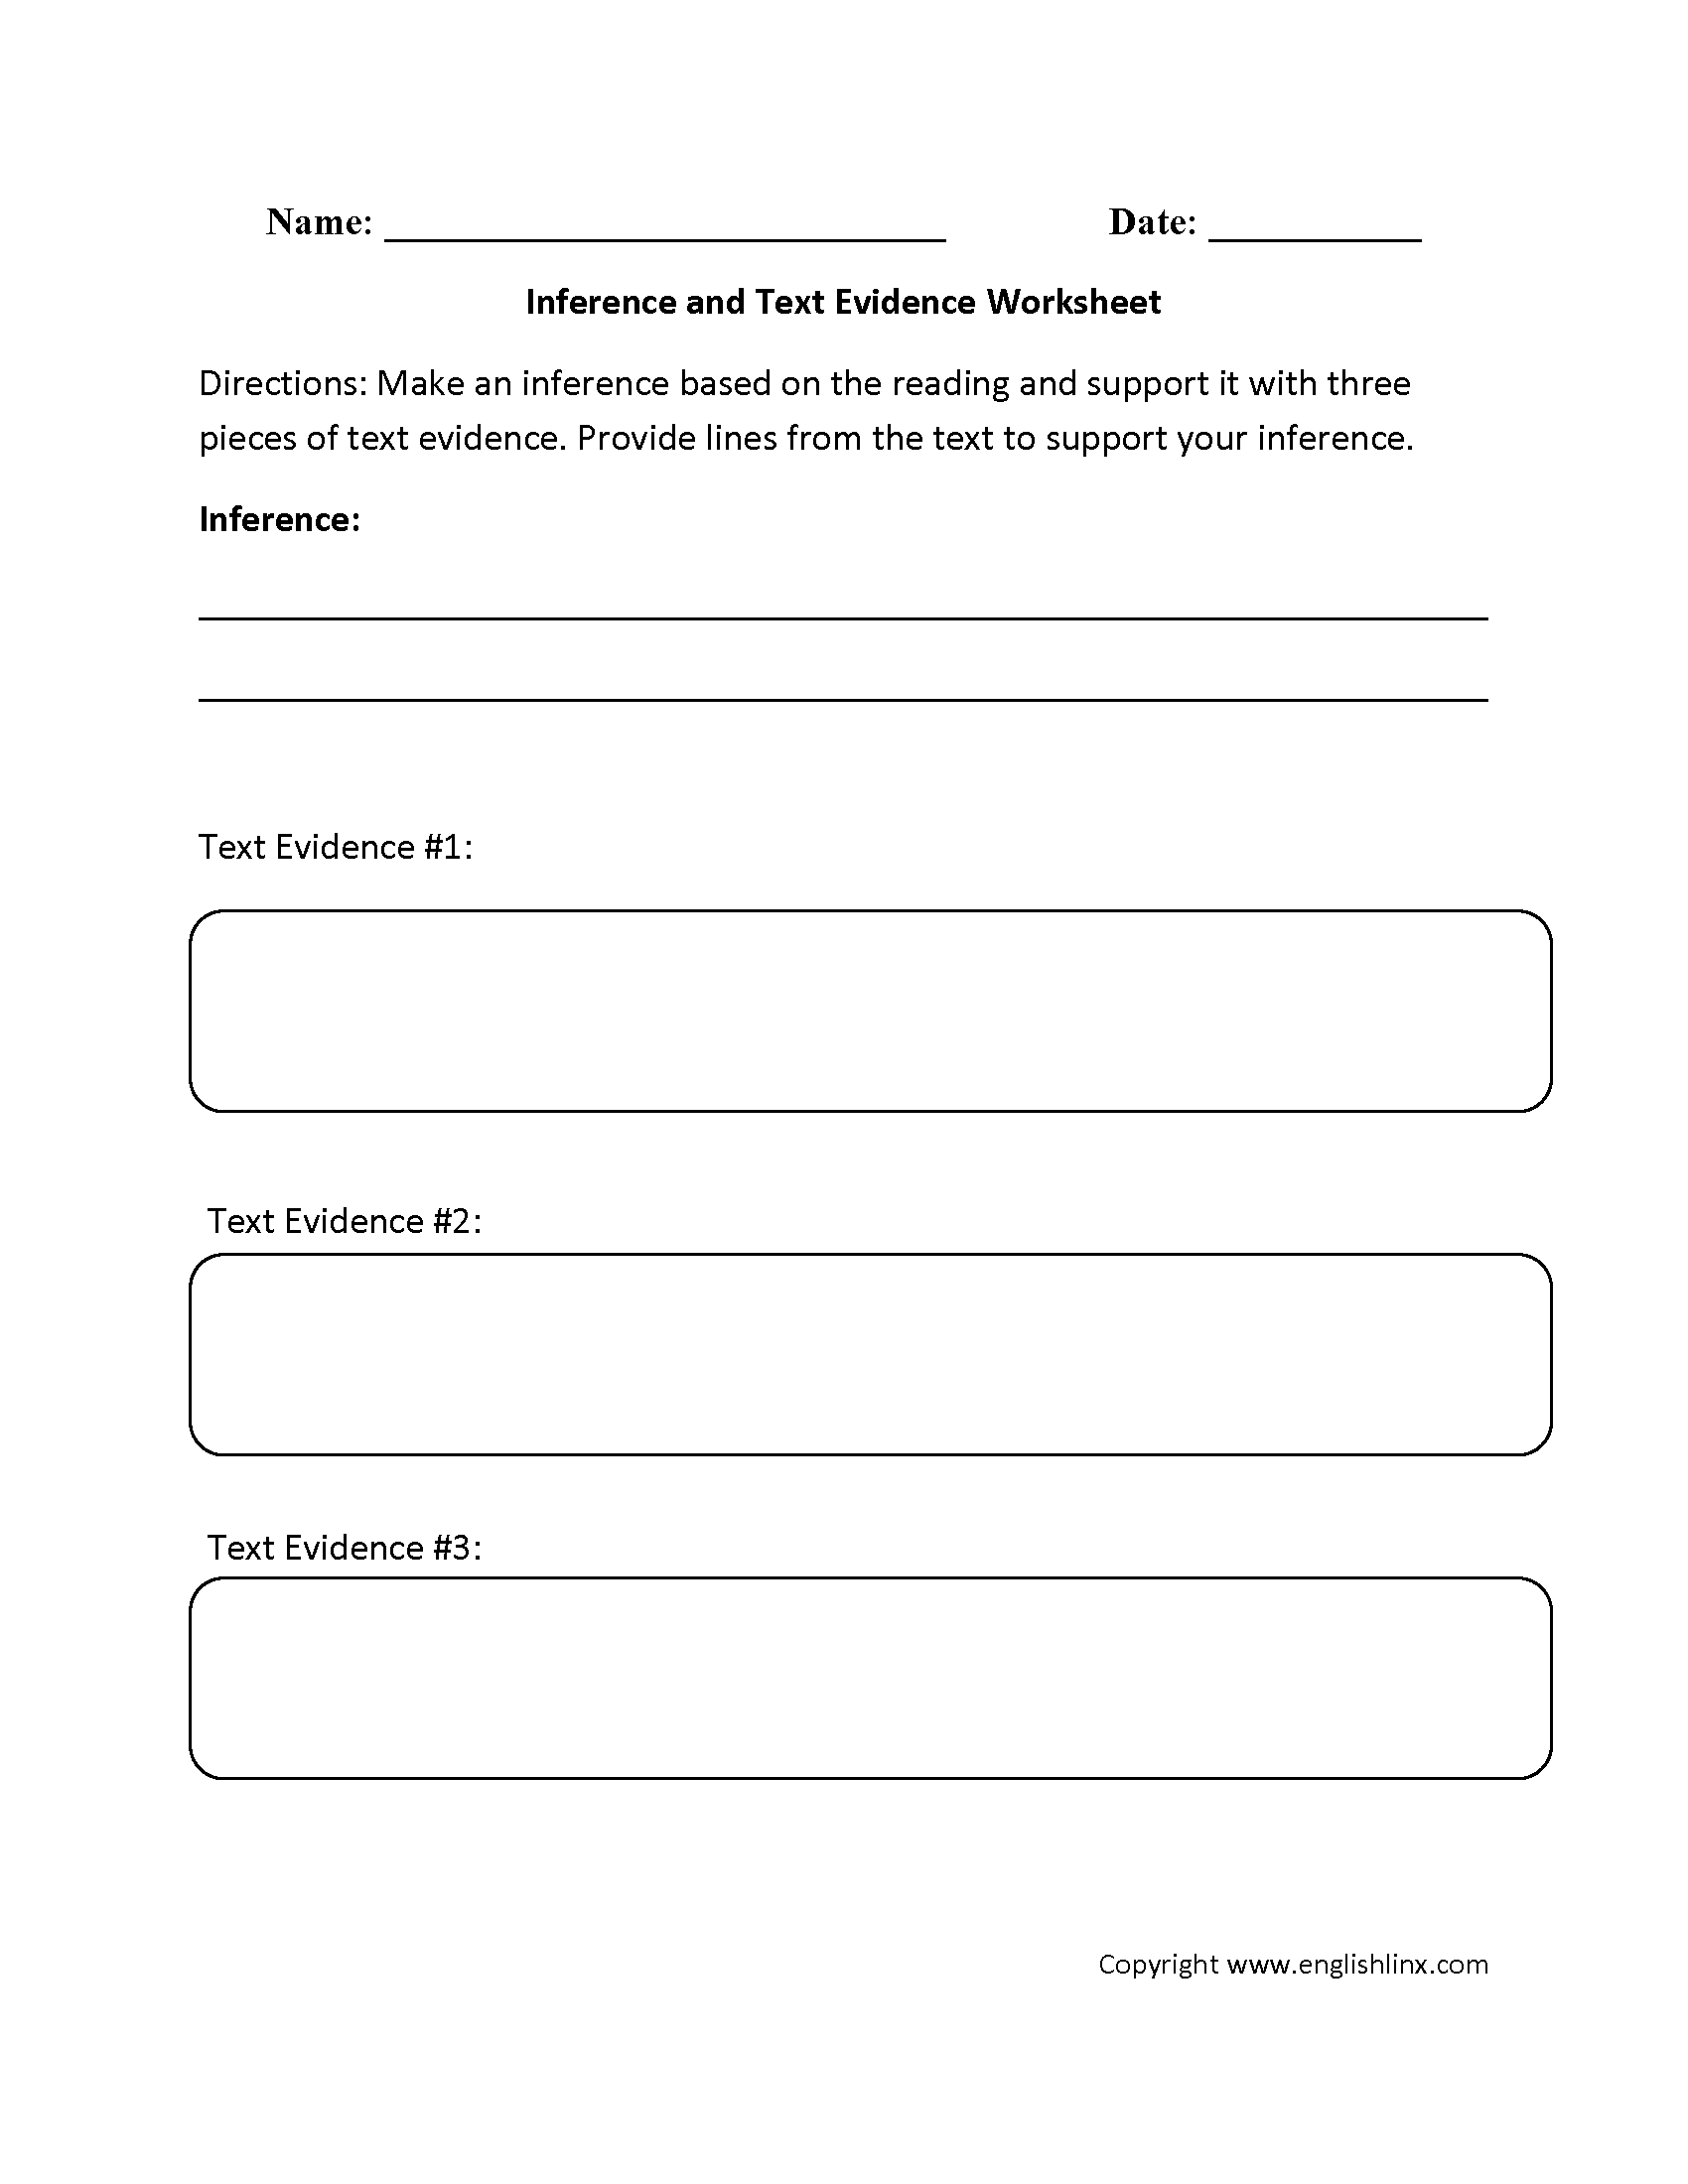 worksheet Inferencing Worksheet great graphic organizers inference text evidence worksheets 2nd worksheets